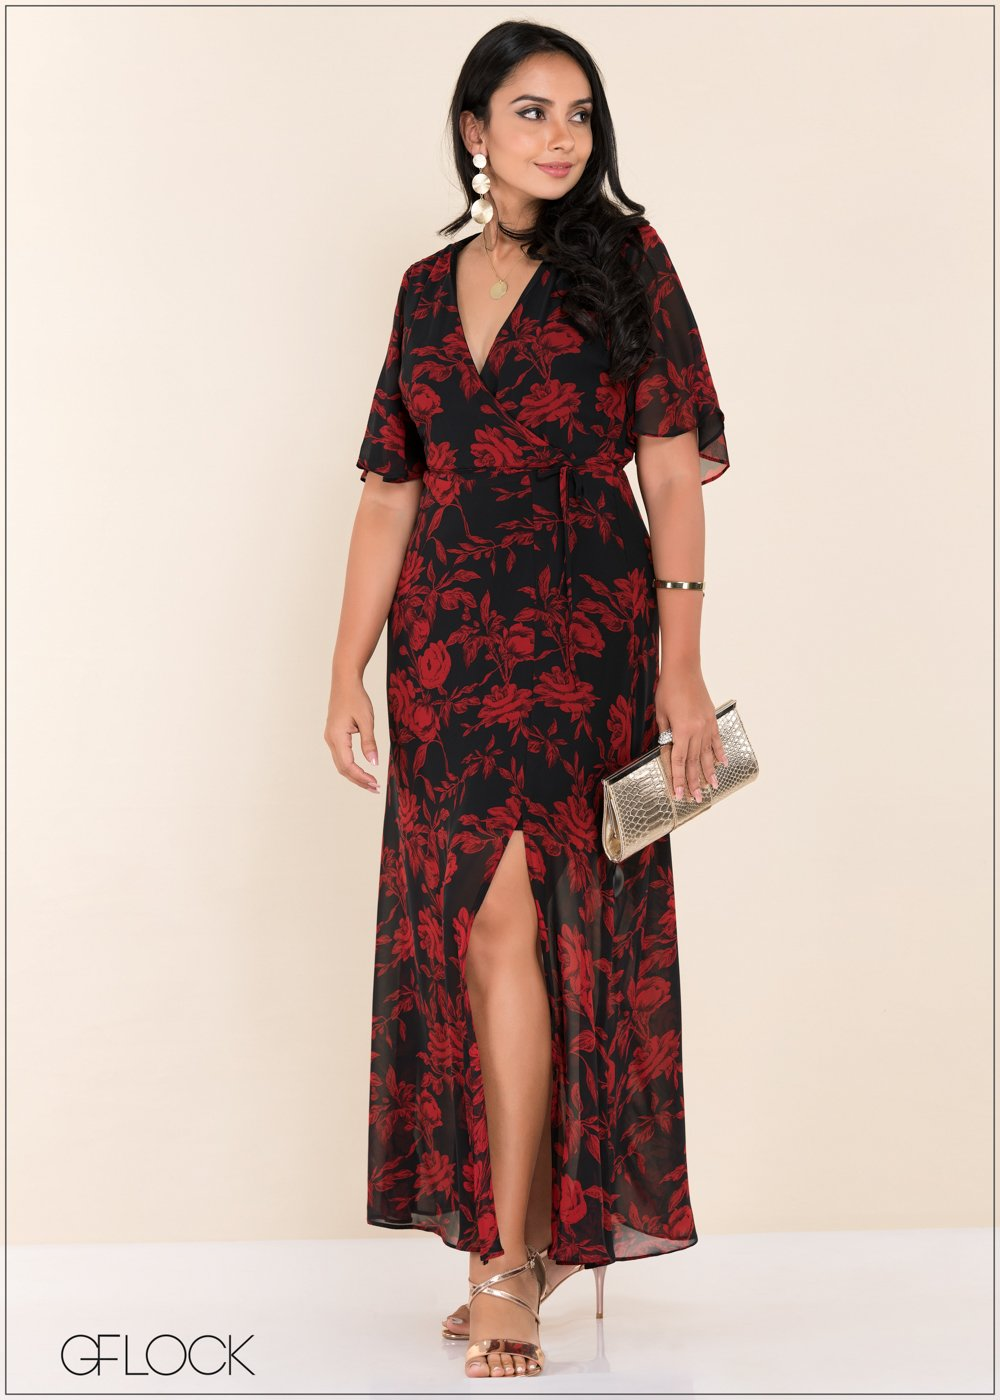 GFLOCK - [product_sku] - Women_Dresses - Side Slit printed Maxi Dress